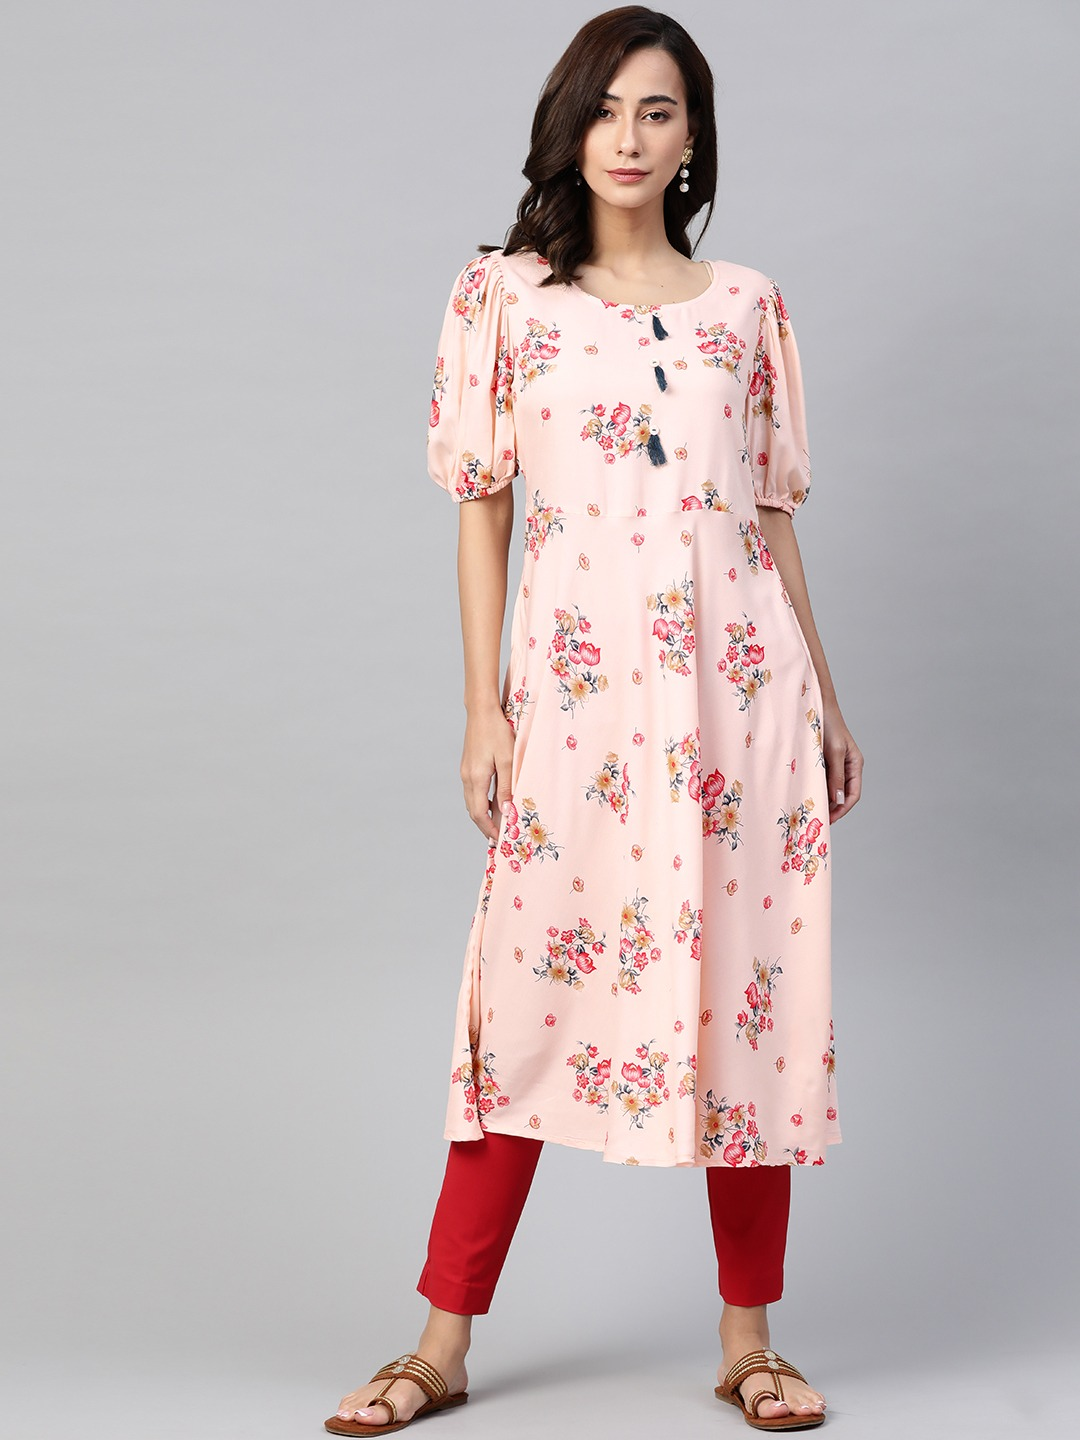 Jompers   Jompers flared floral Print kurta with puff sleeves